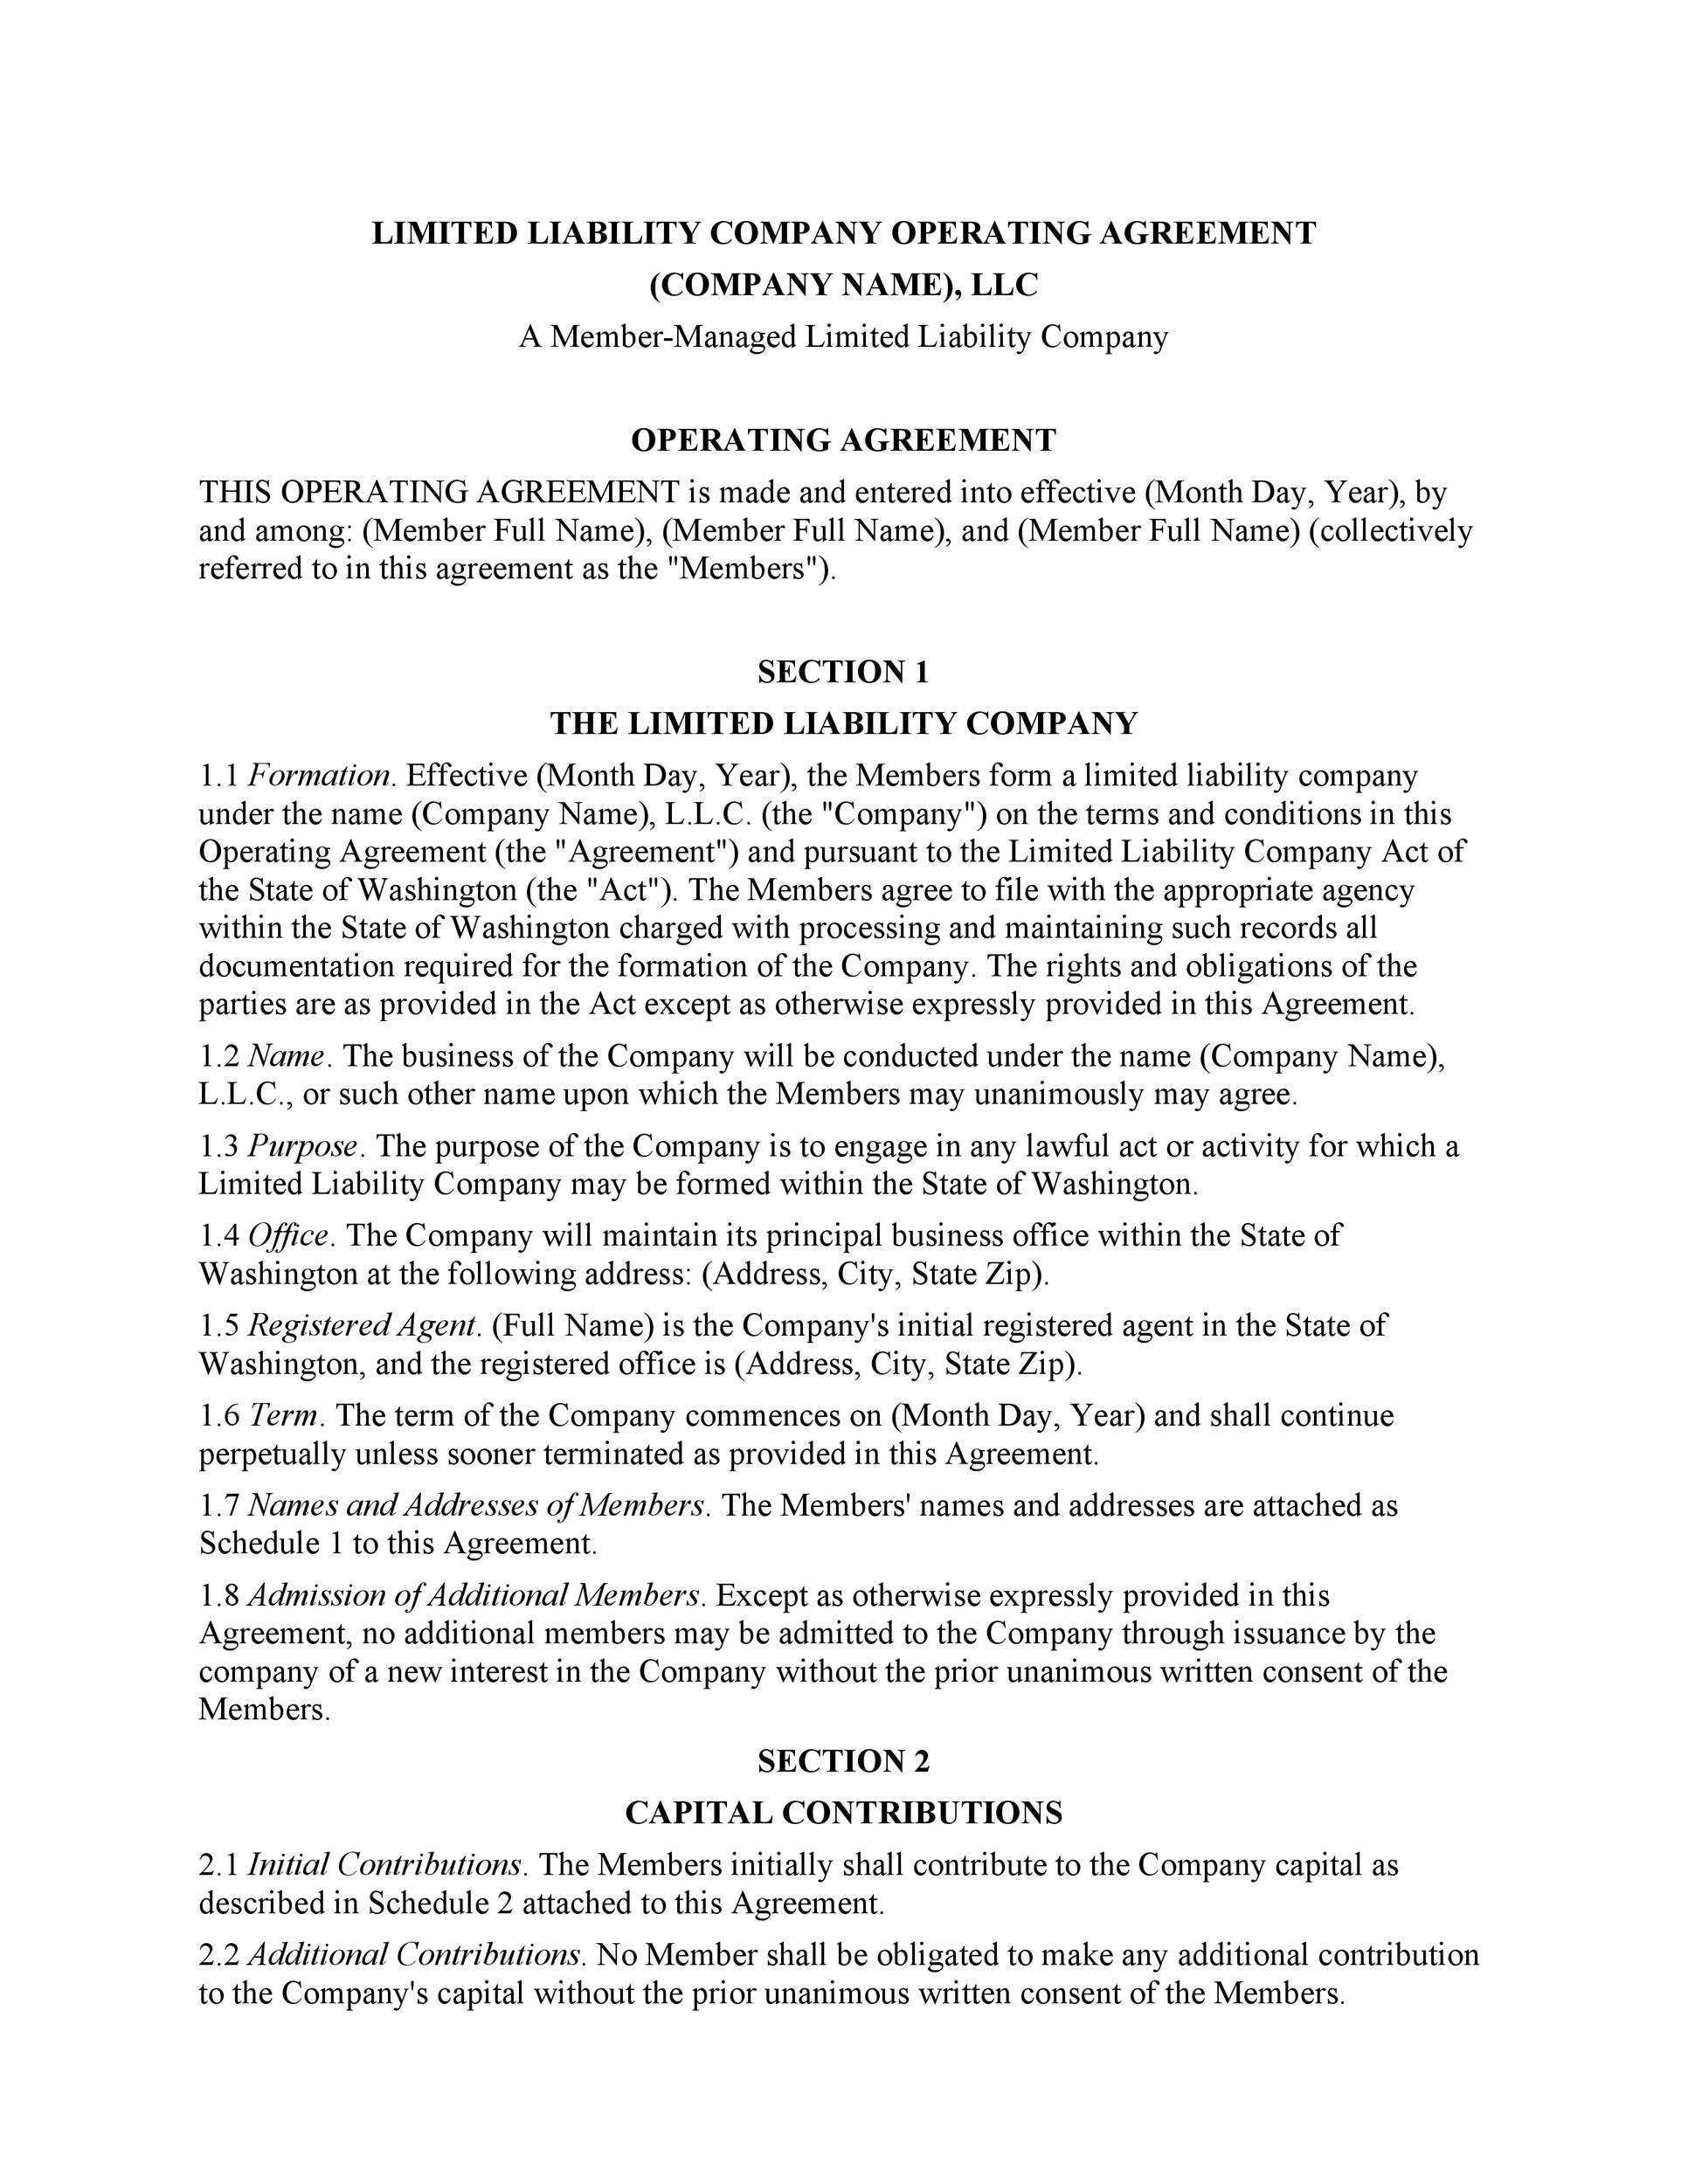 An llc operating agreement, also known as an operating agreement or llc agreement, is: 30 Professional Llc Operating Agreement Templates Á… Templatelab